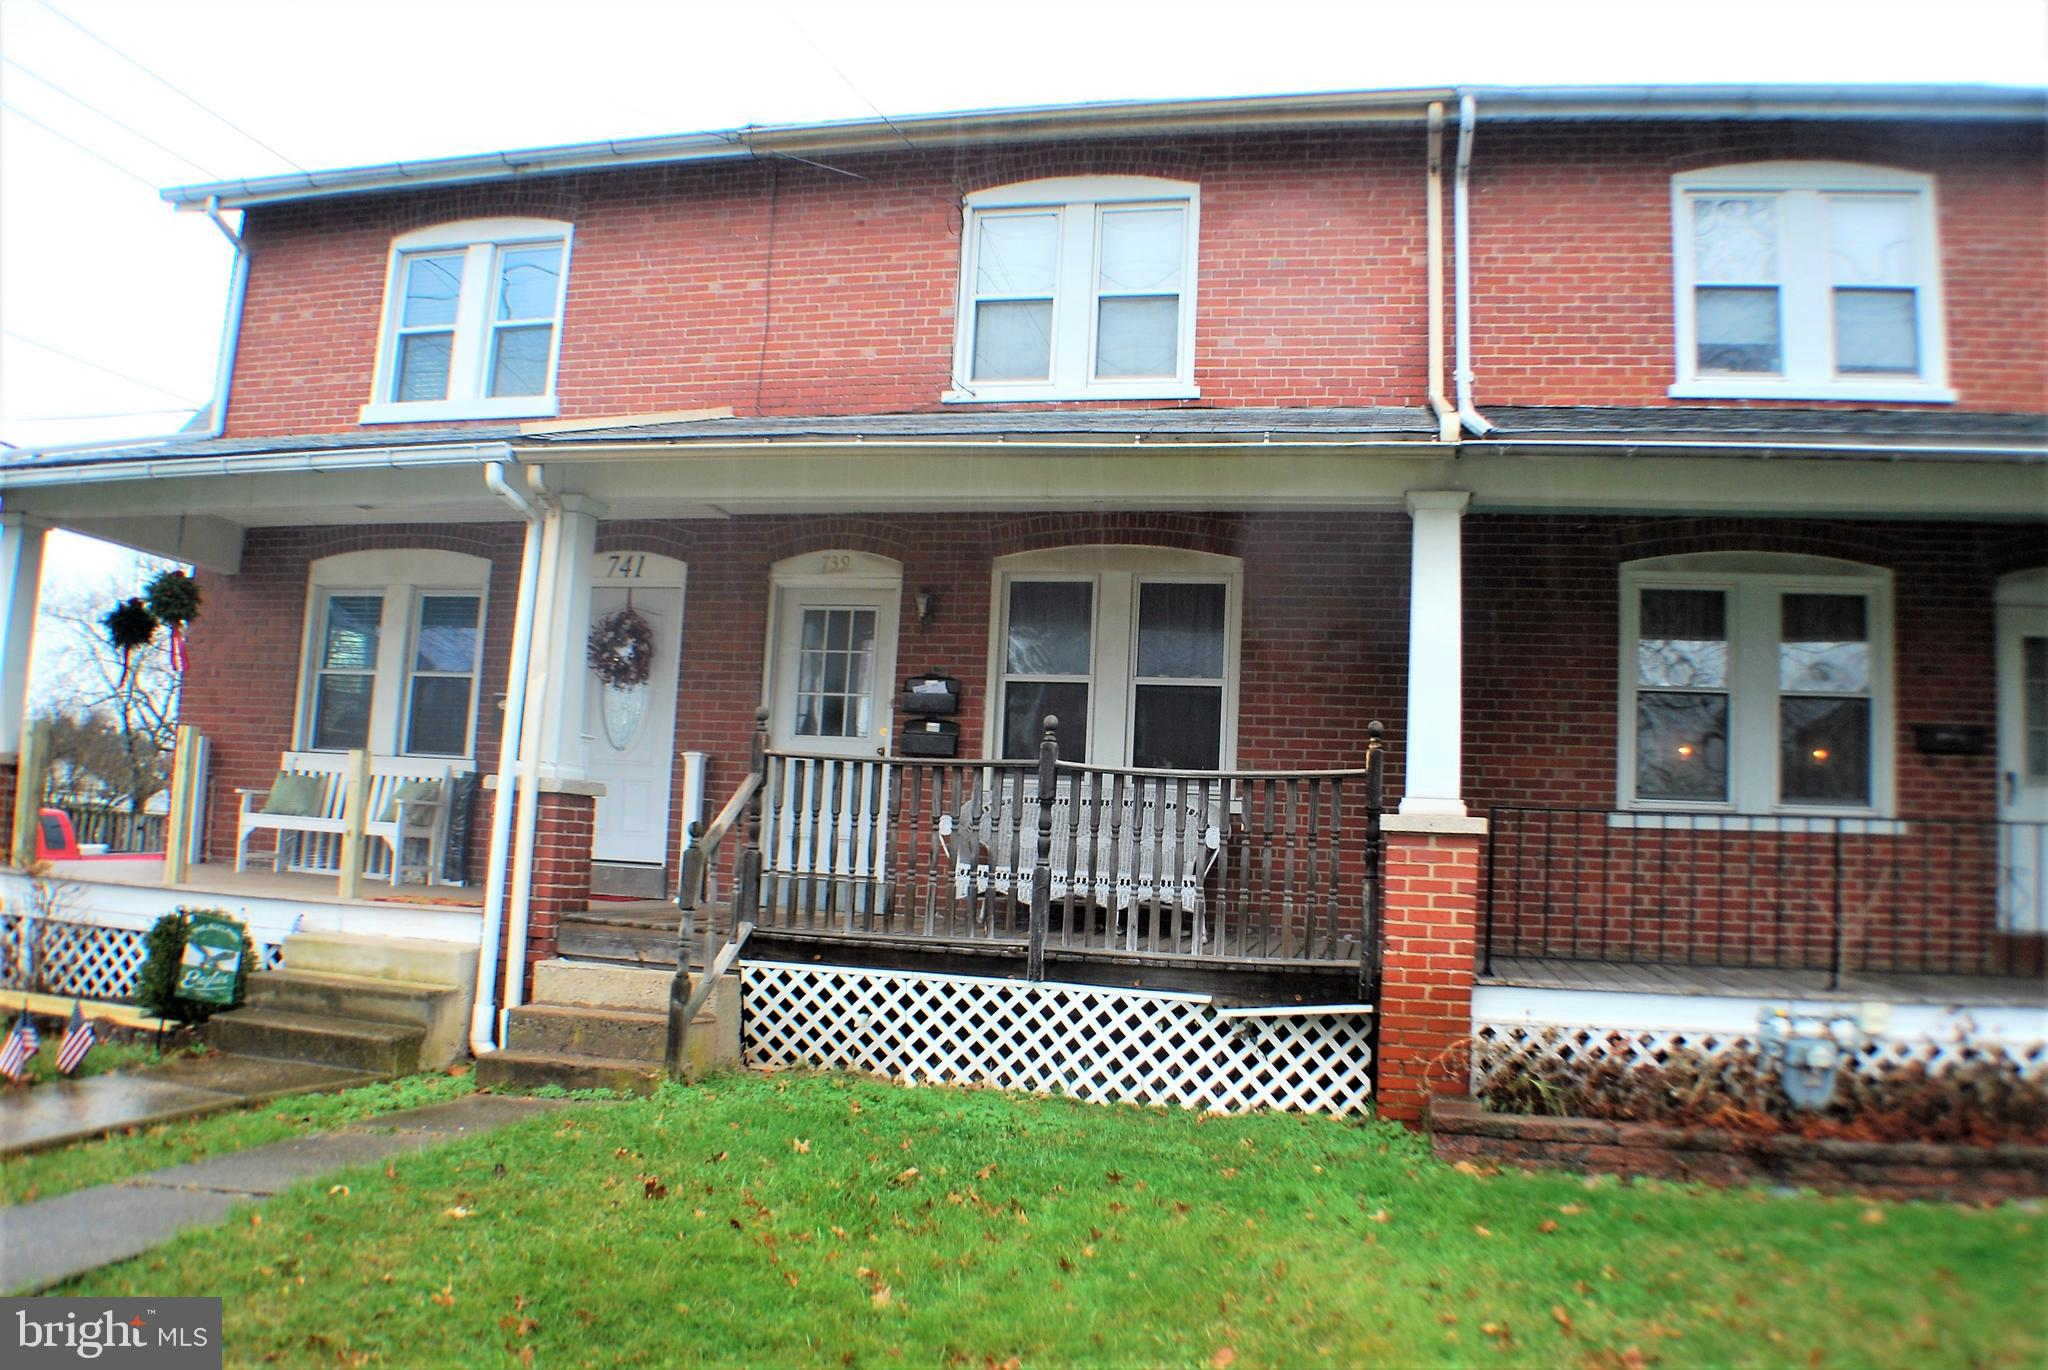 739 W 3RD STREET, LANSDALE, Pennsylvania 19446, ,Multifamily,For Sale,739 W 3RD STREET,PAMC677760